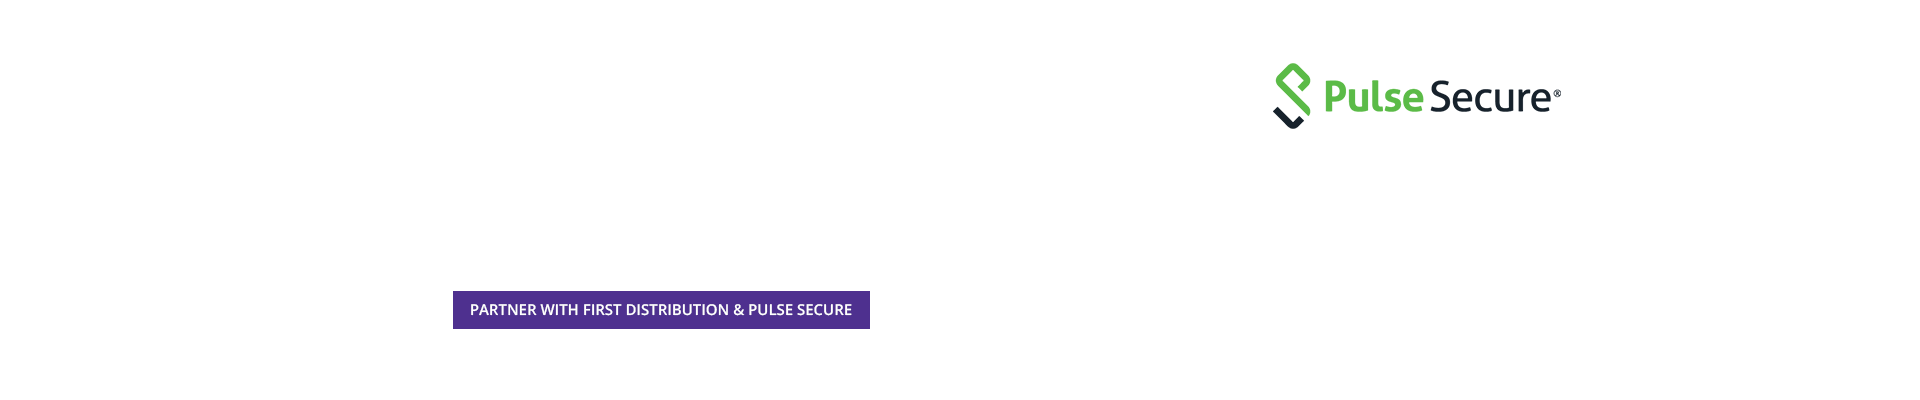 Transform IT with Pulse secure